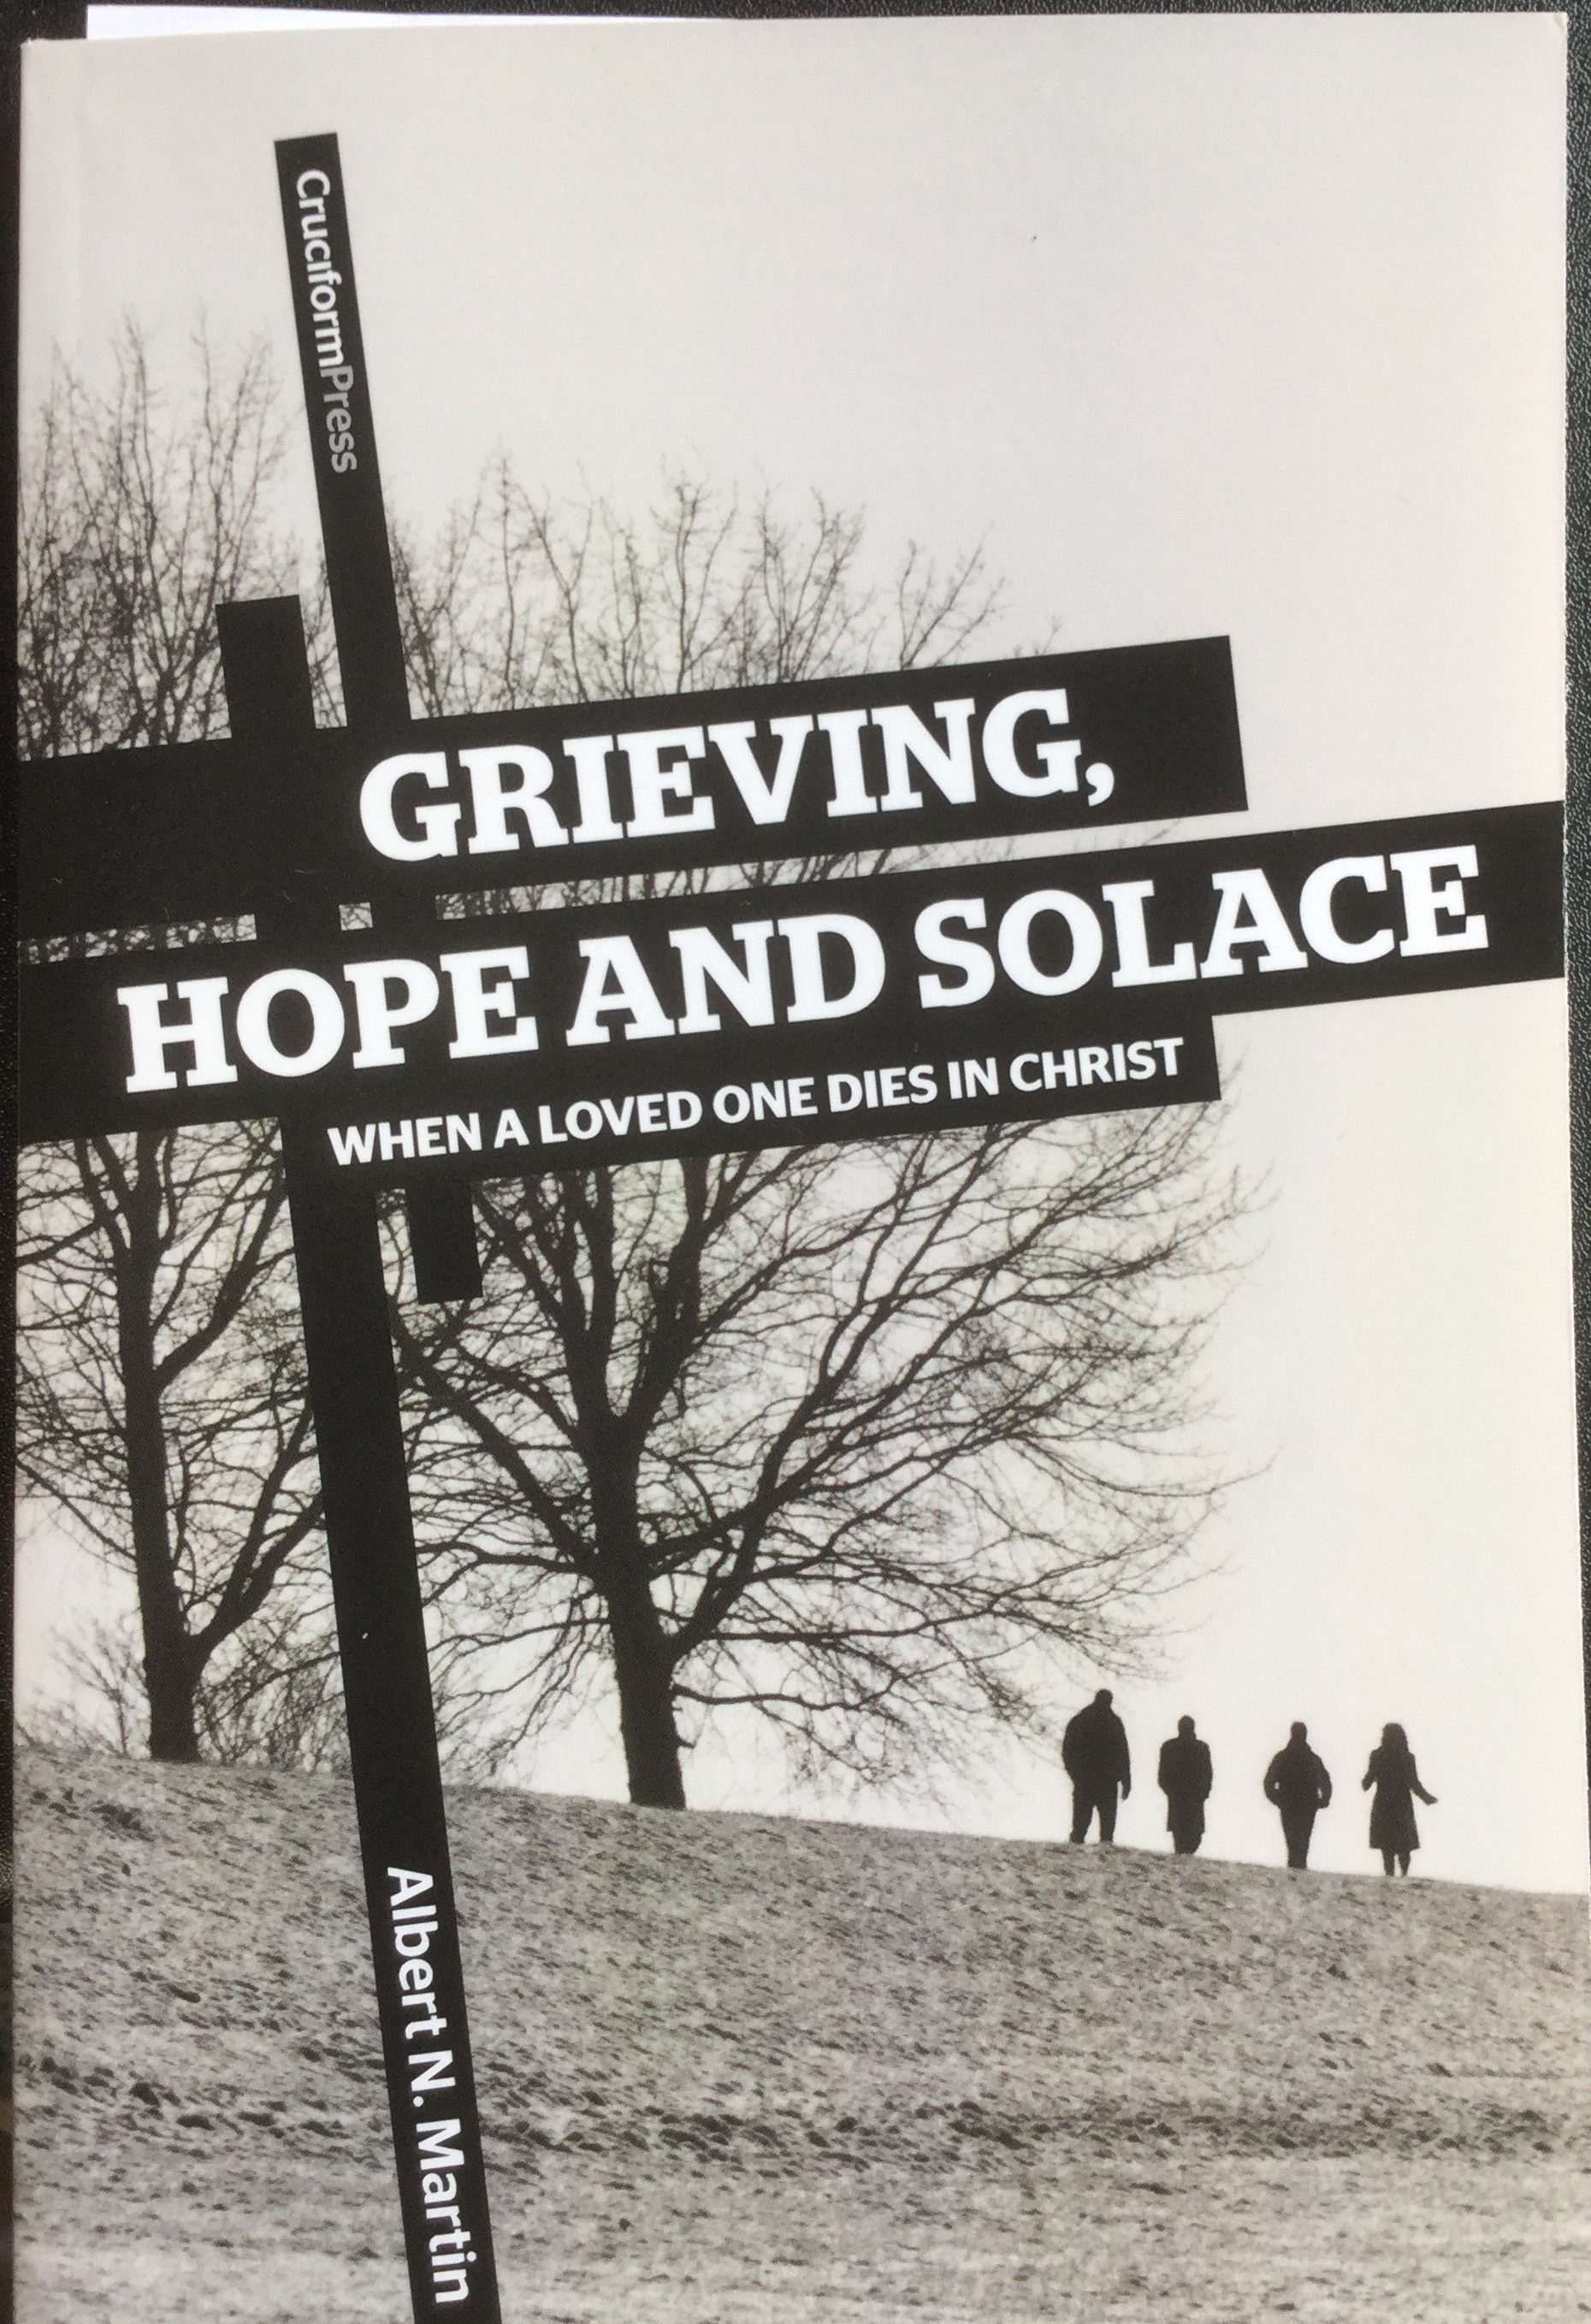 I Was Told The Christian Bookshop Michael Keen Had Ordered Several Copies Of A Book On Grieving By Al Martin Well Known Preacher In Reformed Baptist